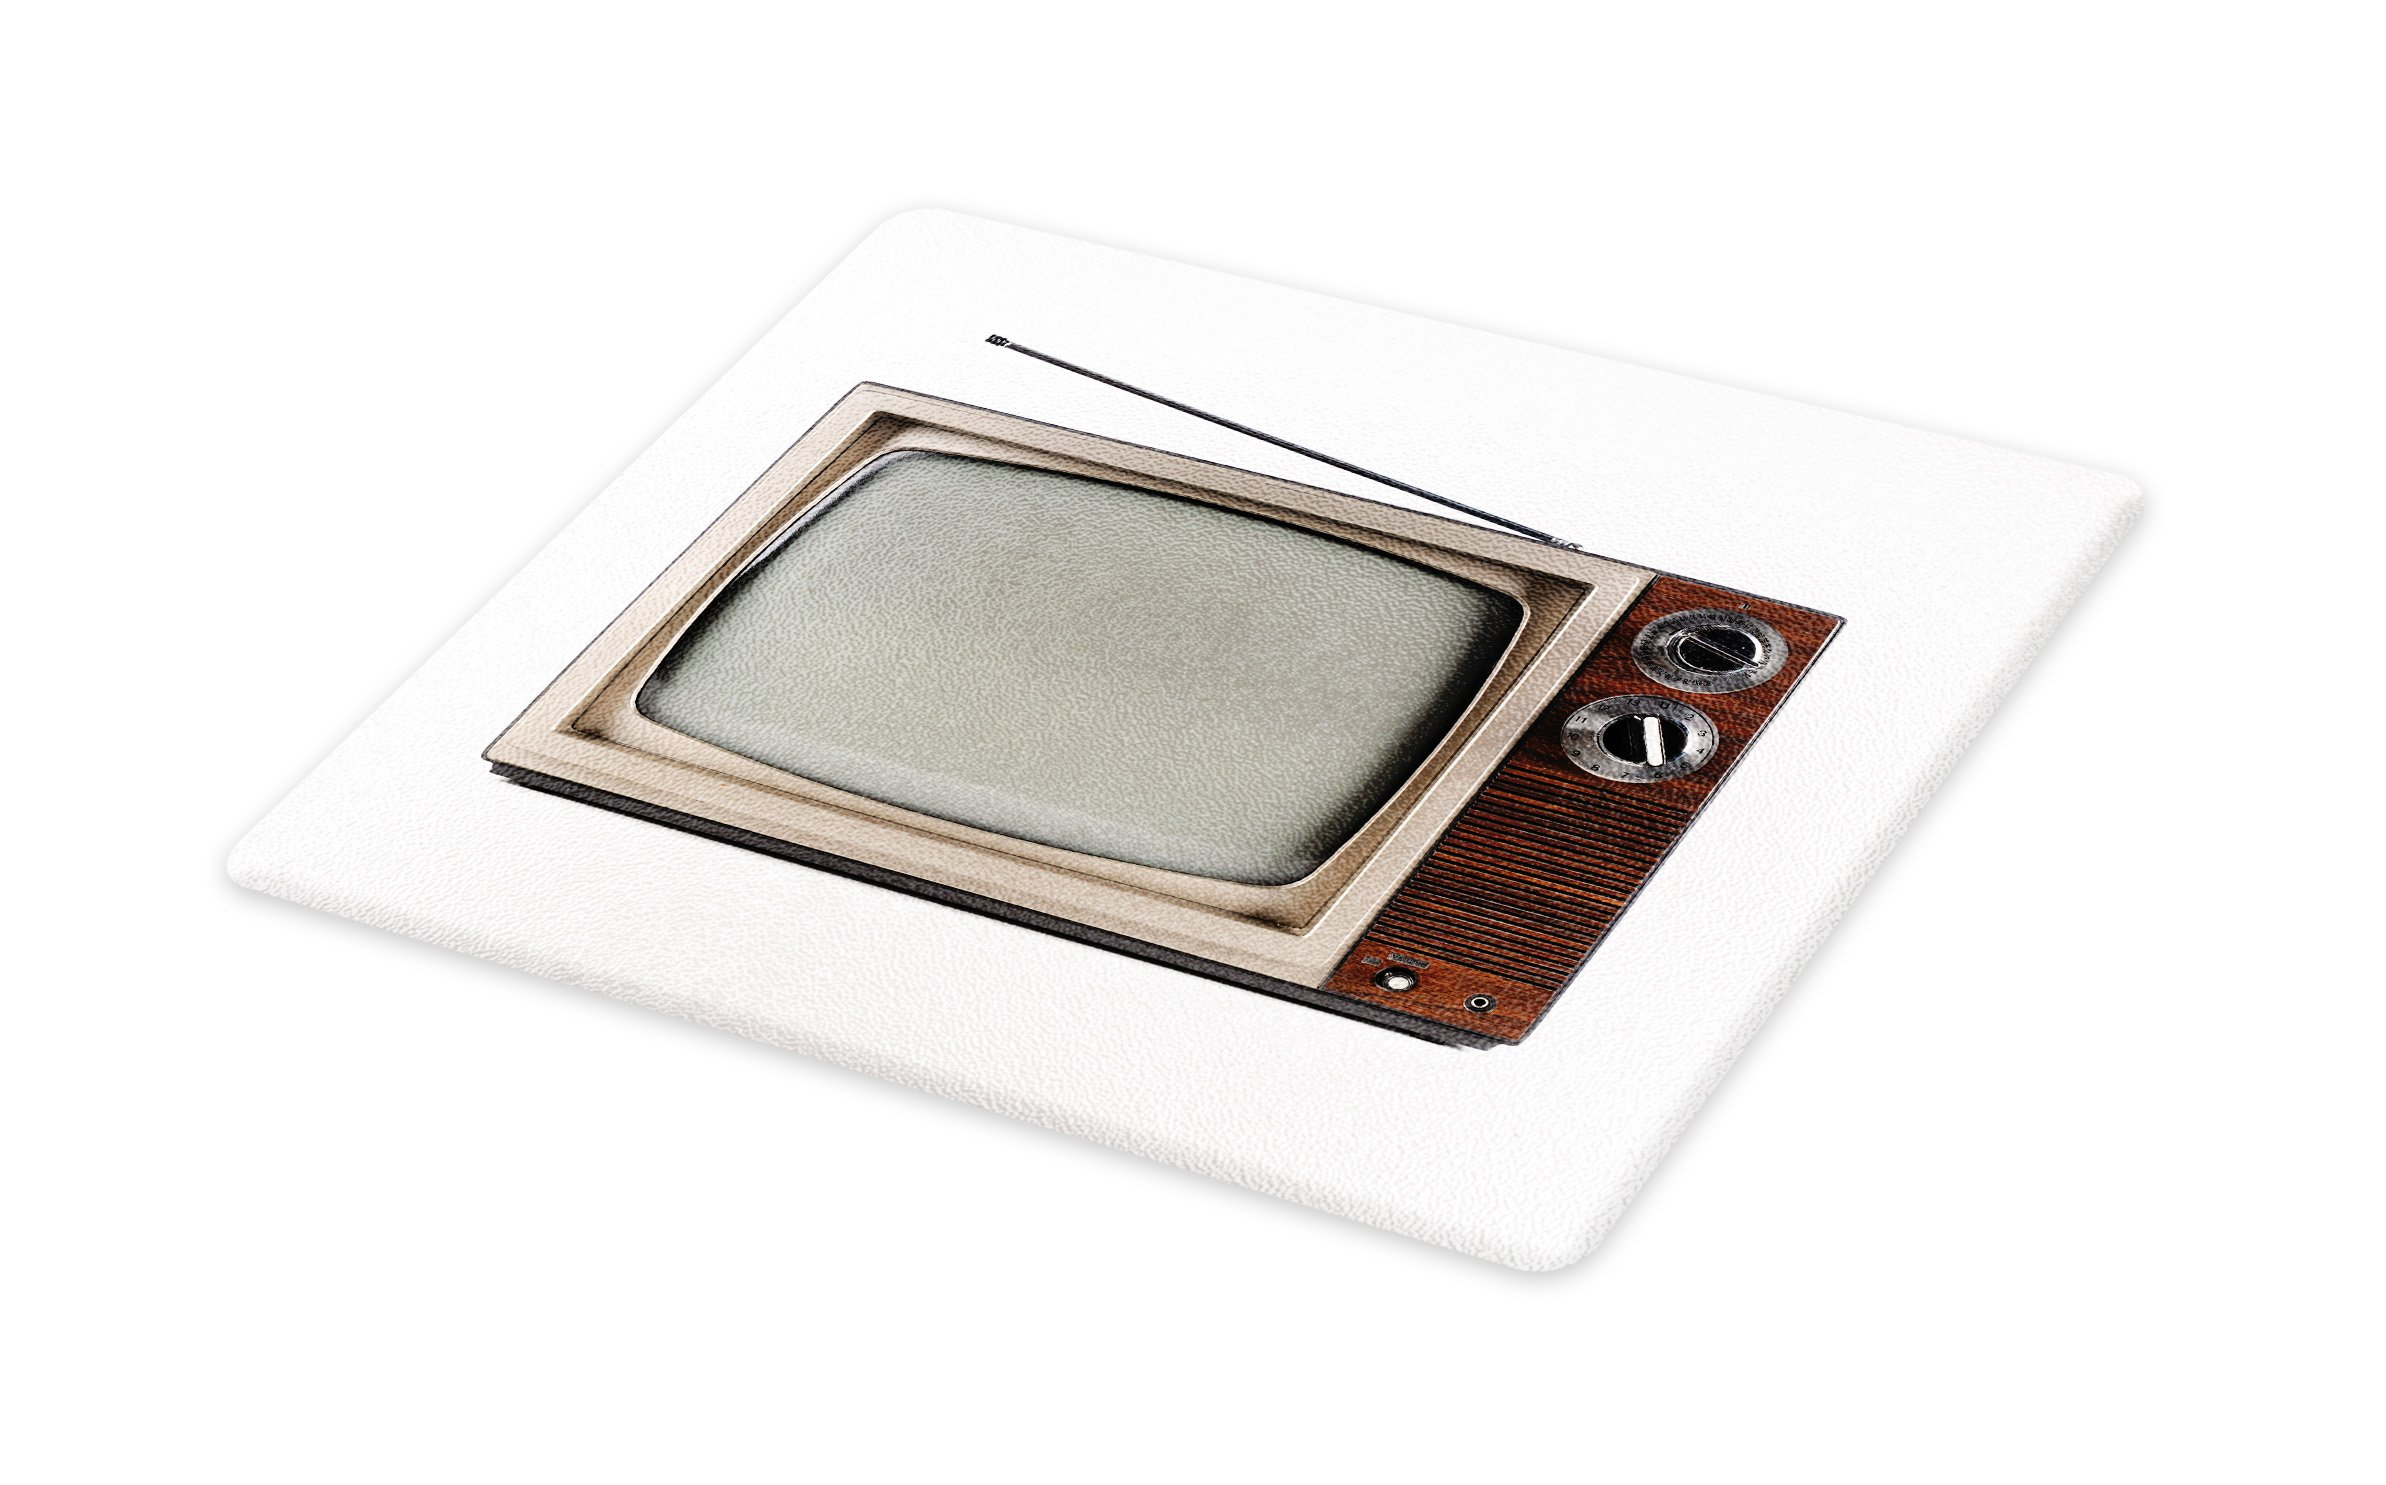 Lunarable 1950s Cutting Board, Old Television with Antenna Broadcast Display Antique TV Historic Movie Screen, Decorative Tempered Glass Cutting and Serving Board, Small Size, Umber Taupe White